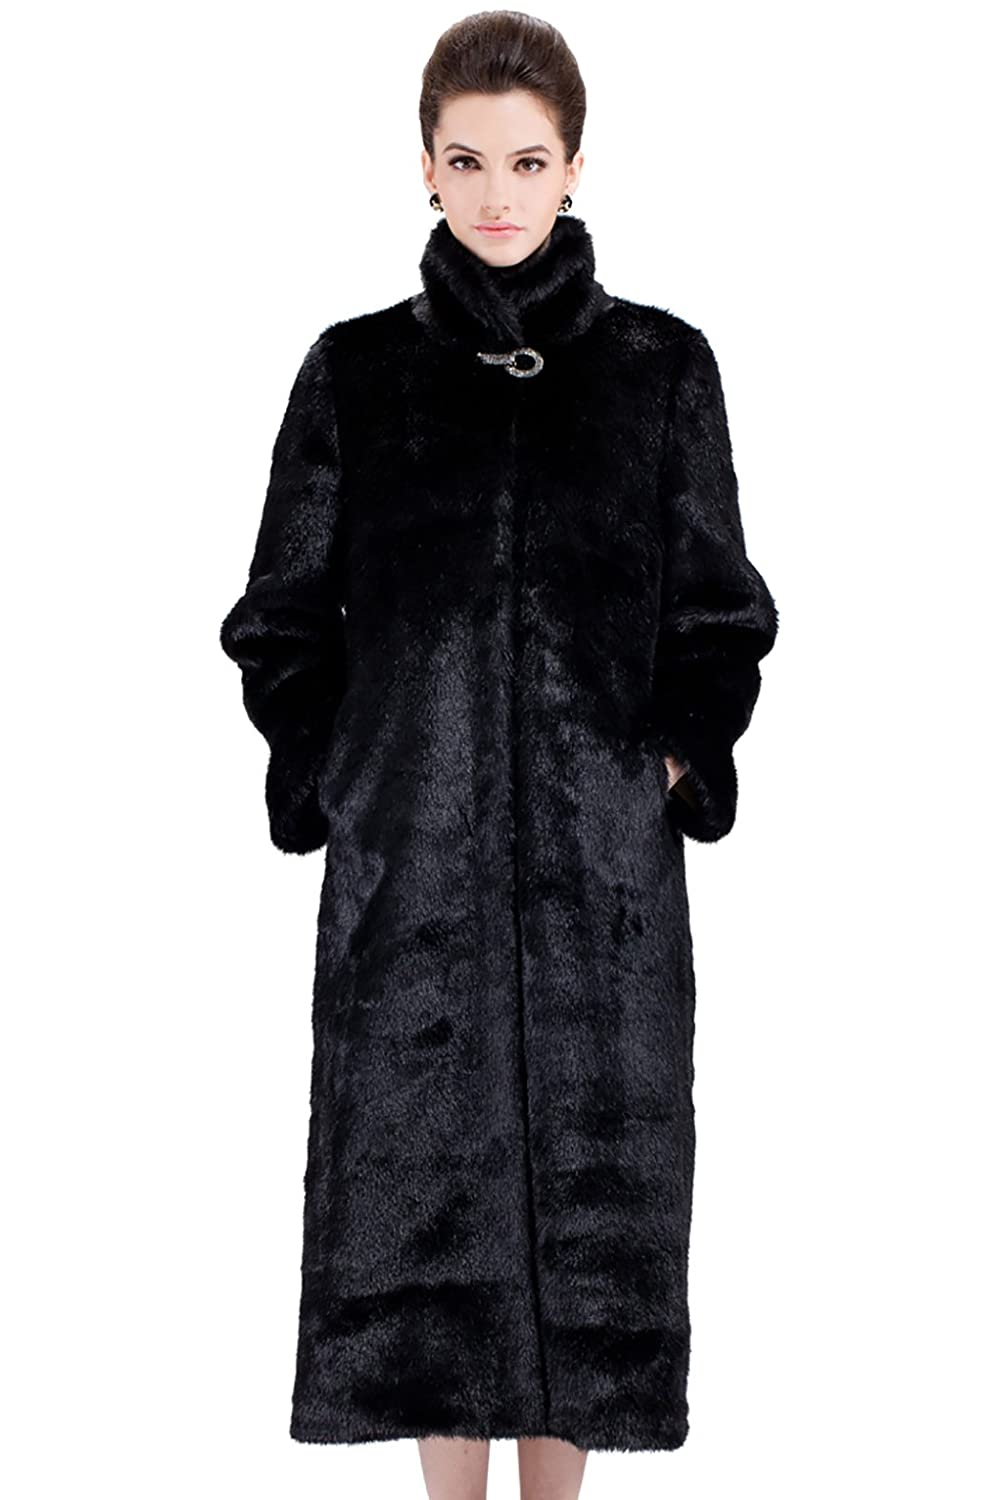 Vintage Coats & Jackets | Retro Coats and Jackets  Vintage Outerwear Mink Fabulous Faux Fur Coat $277.00 AT vintagedancer.com